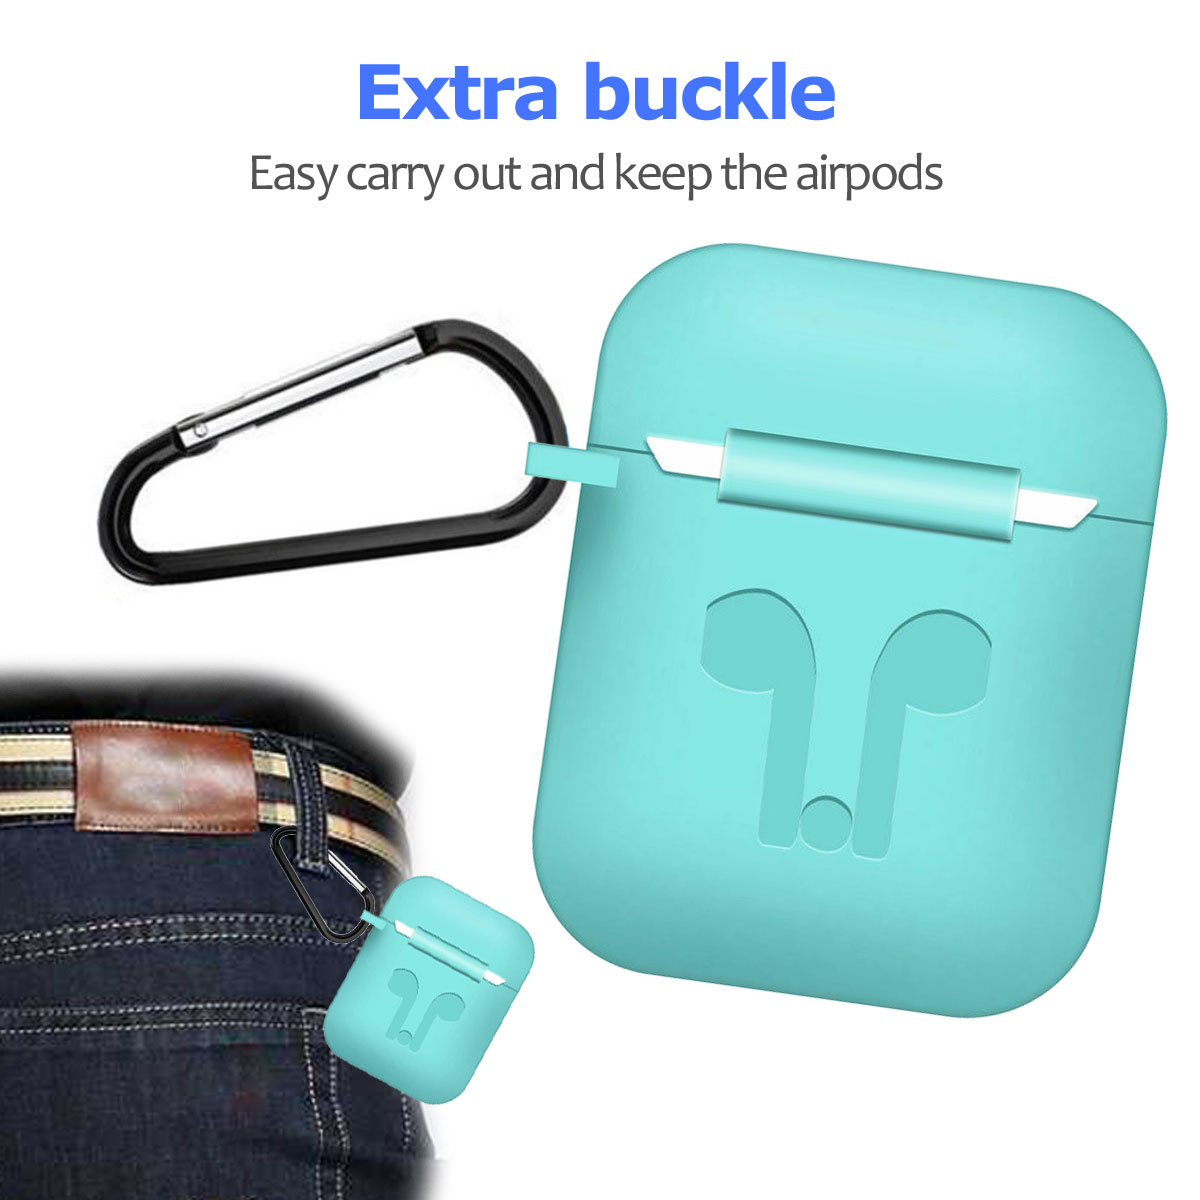 Silicone-Ruggged-Case-Cover-Earbuds-For-Apple-AirPods-2nd-Gen-Accessories-2019 thumbnail 43